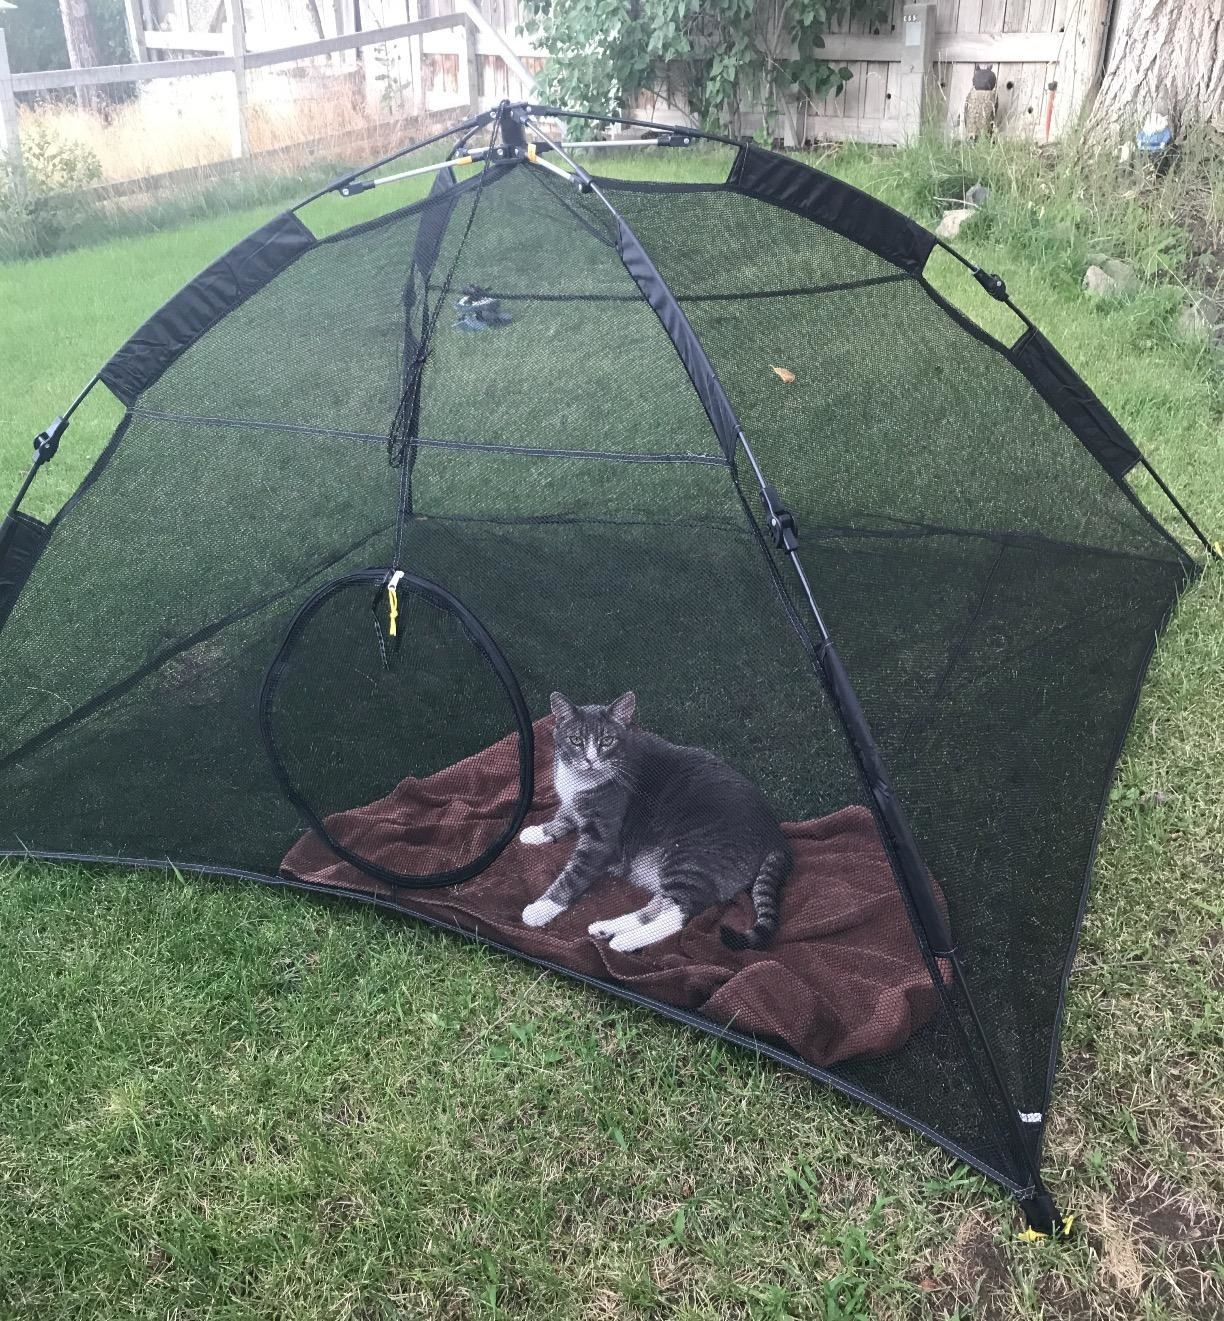 A cat sits on a blanket in the cat tent